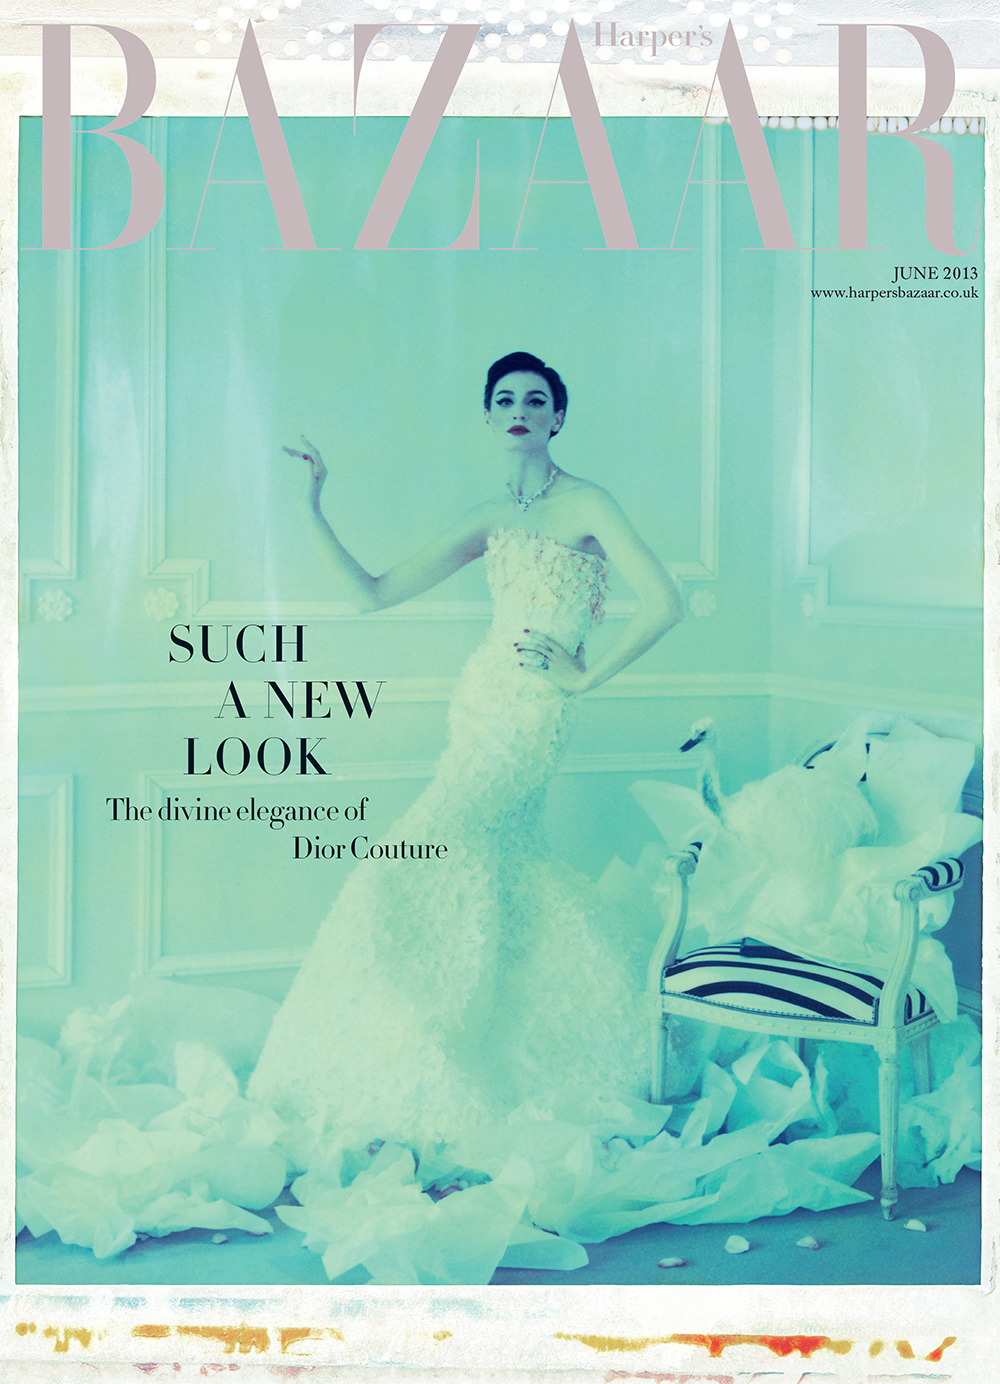 harpers-bazaar-v-and-a-covers-02